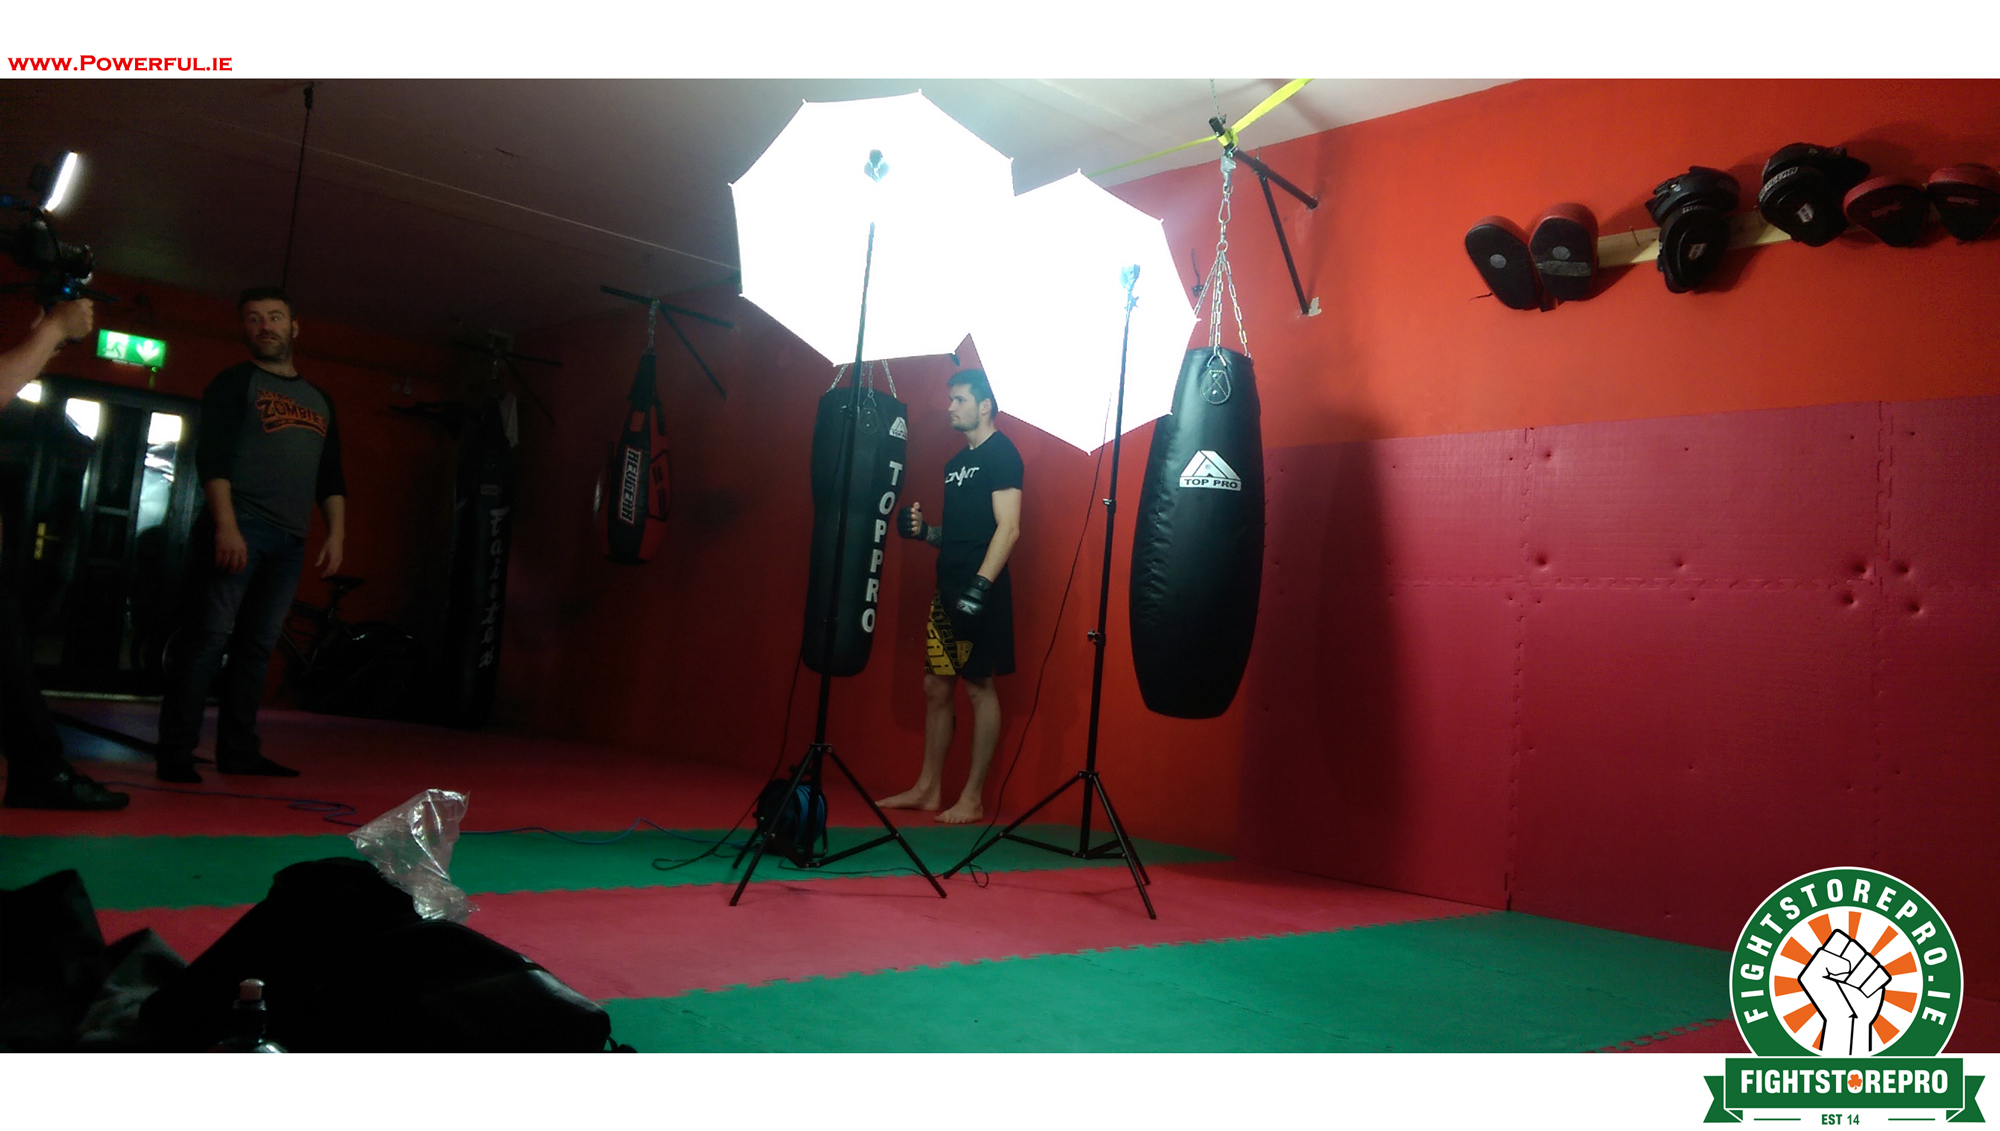 Ben Forsyth stops by our store for a video shoot with Onnit Supplements